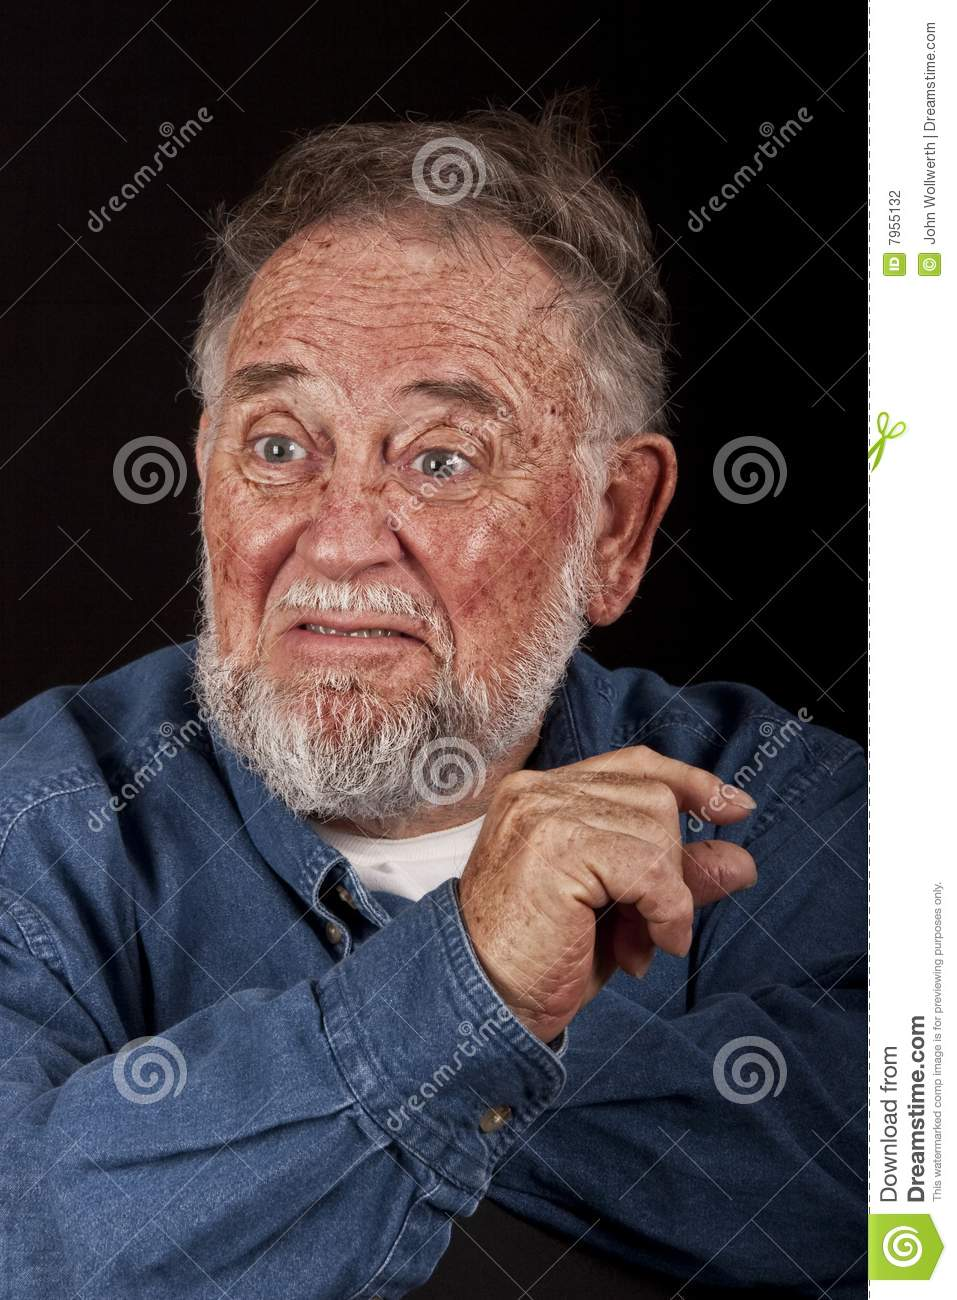 Angry impatient old man